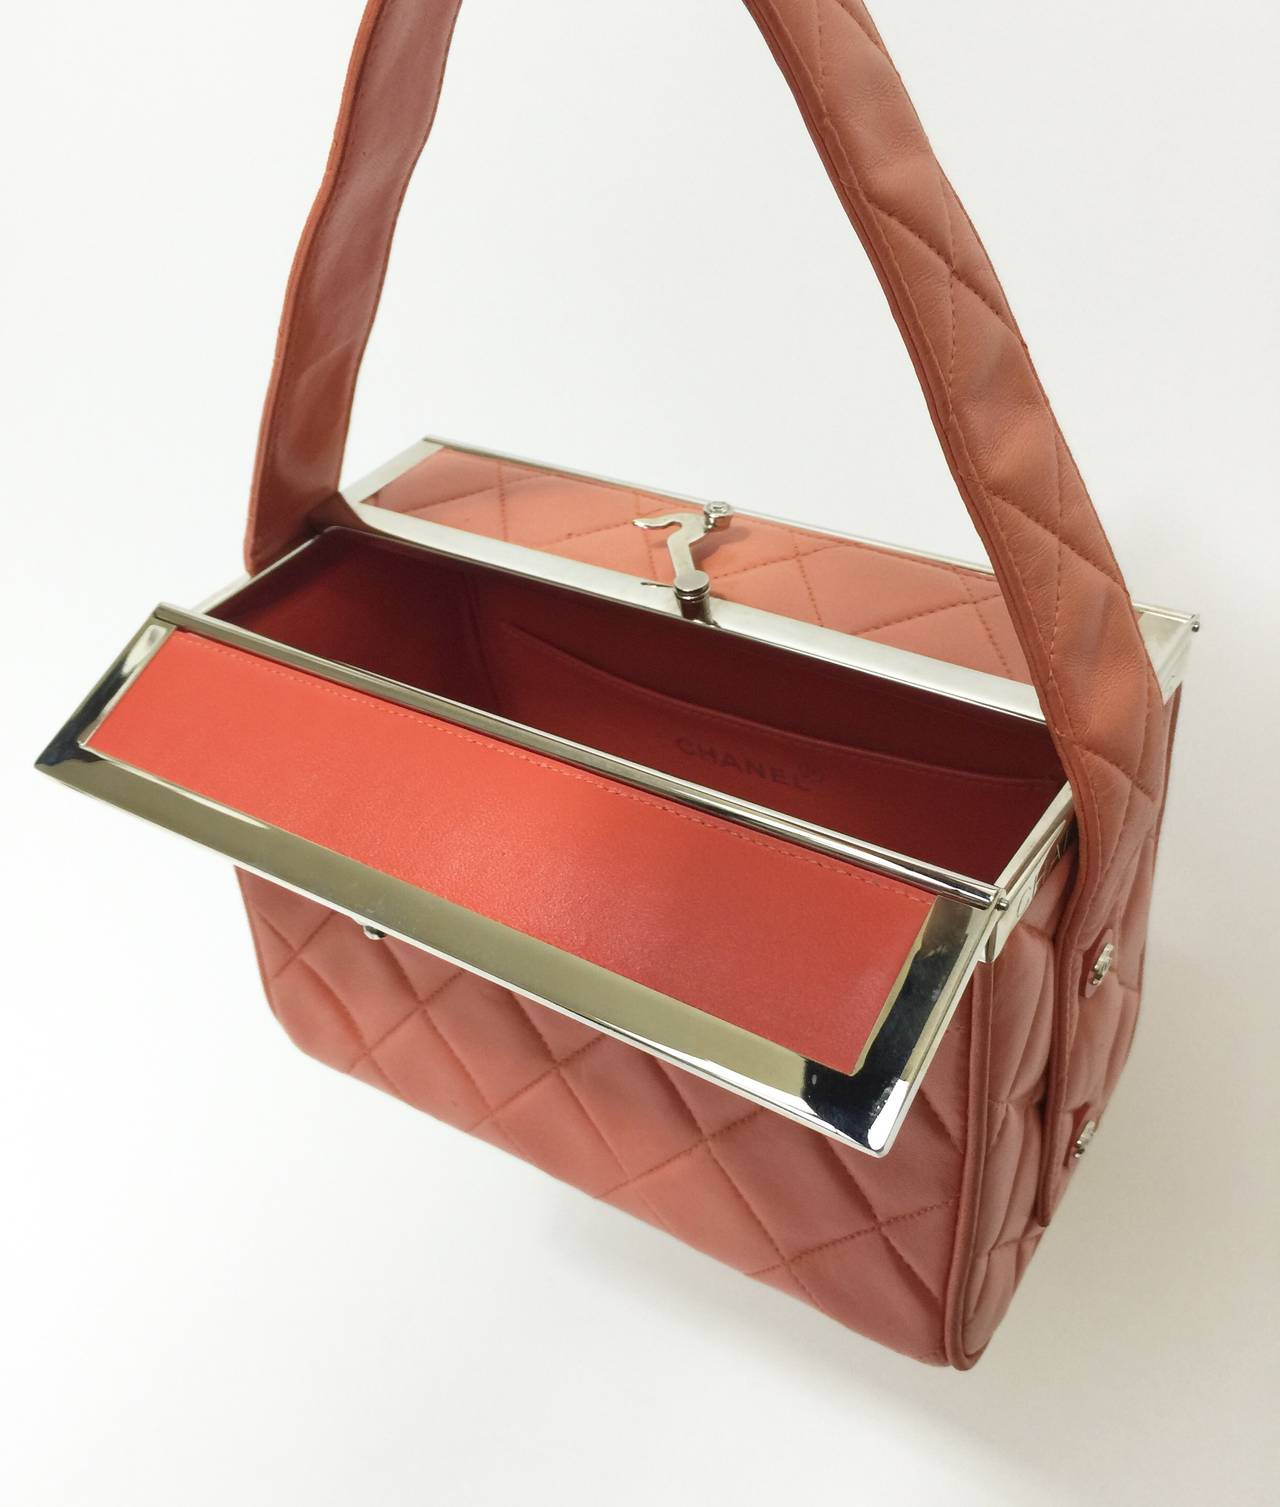 6be5bb4ba42b Chanel Bags Box | Stanford Center for Opportunity Policy in Education